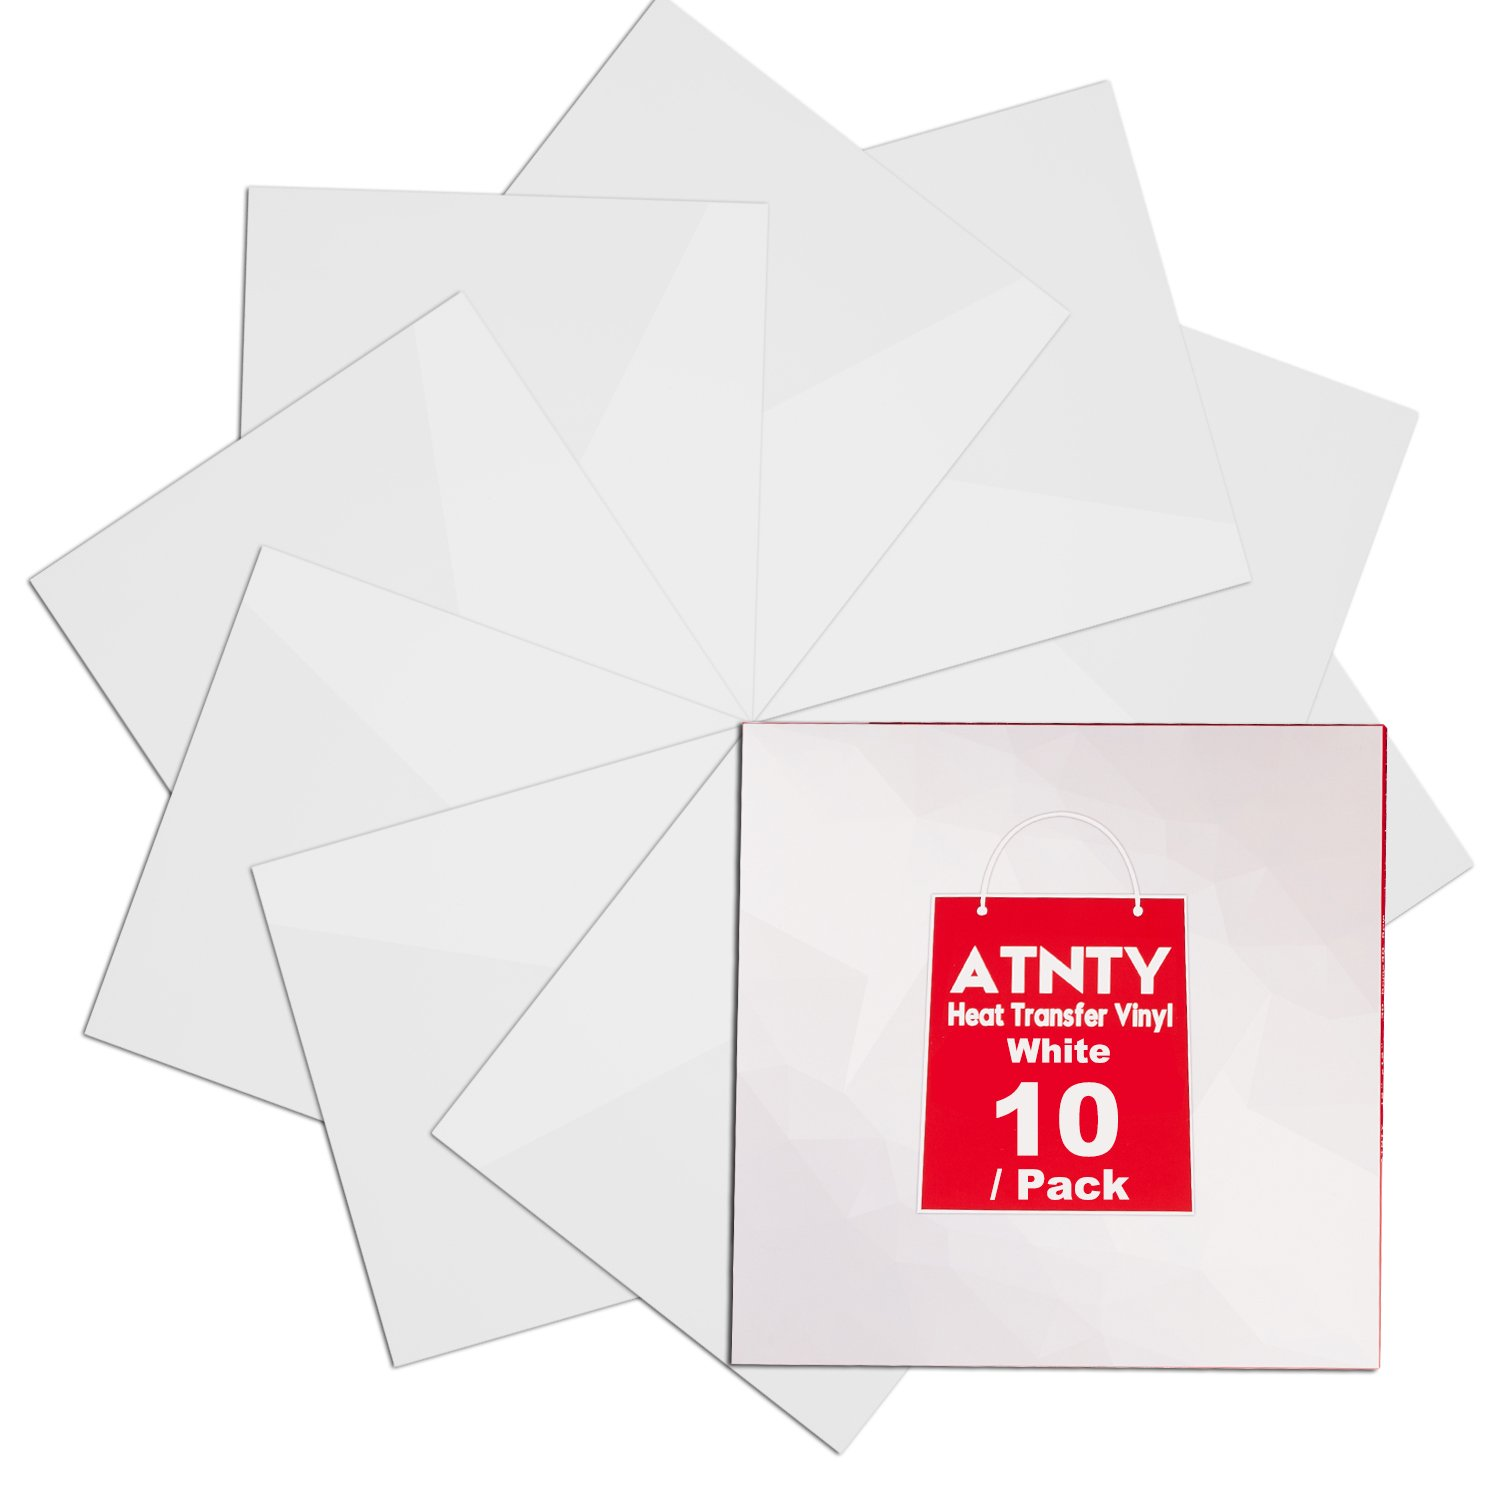 "HTV Heat Transfer Vinyl White - 10 Pack 12"" x 12"" Sheets for Iron On T-Shirts ATNTY"